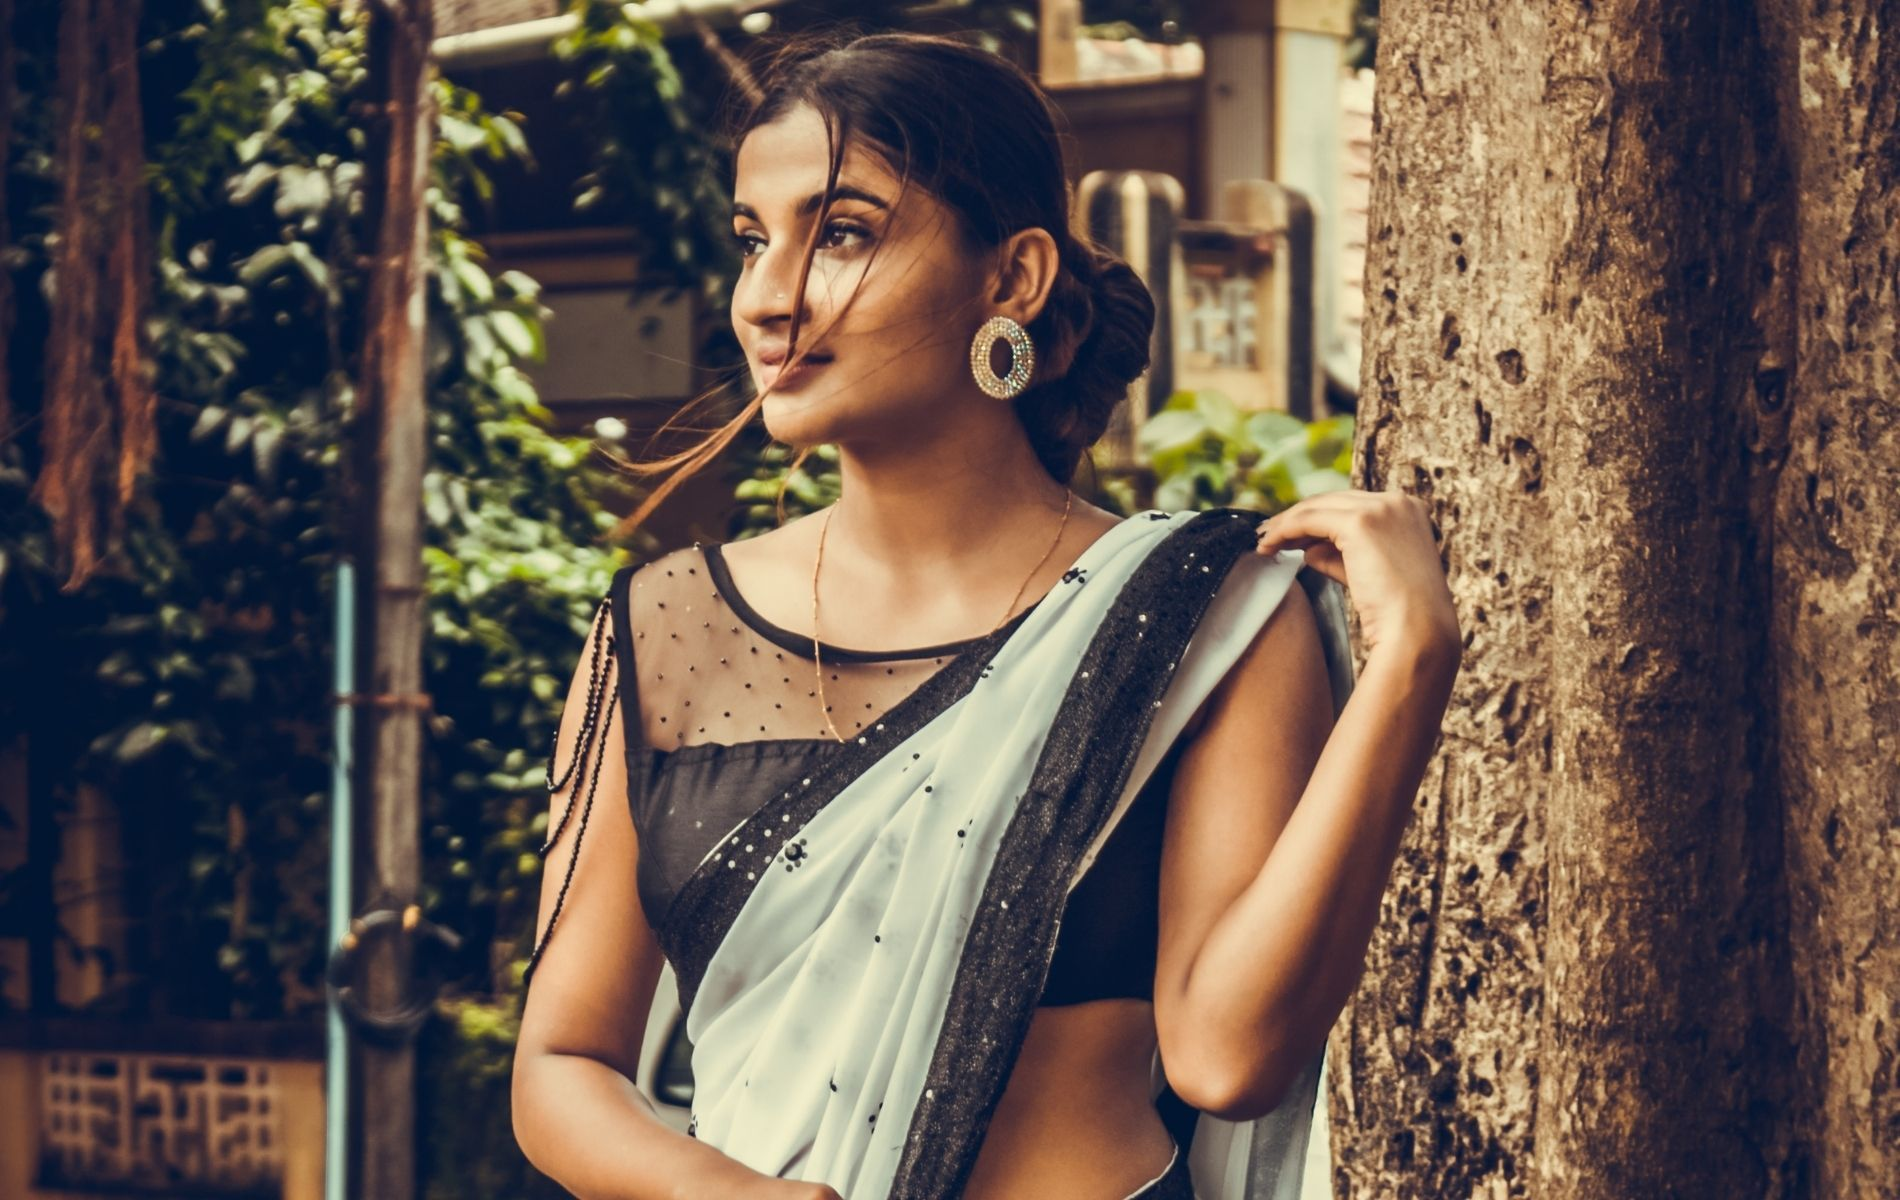 Deepavali 2020: What To Know About The Sari